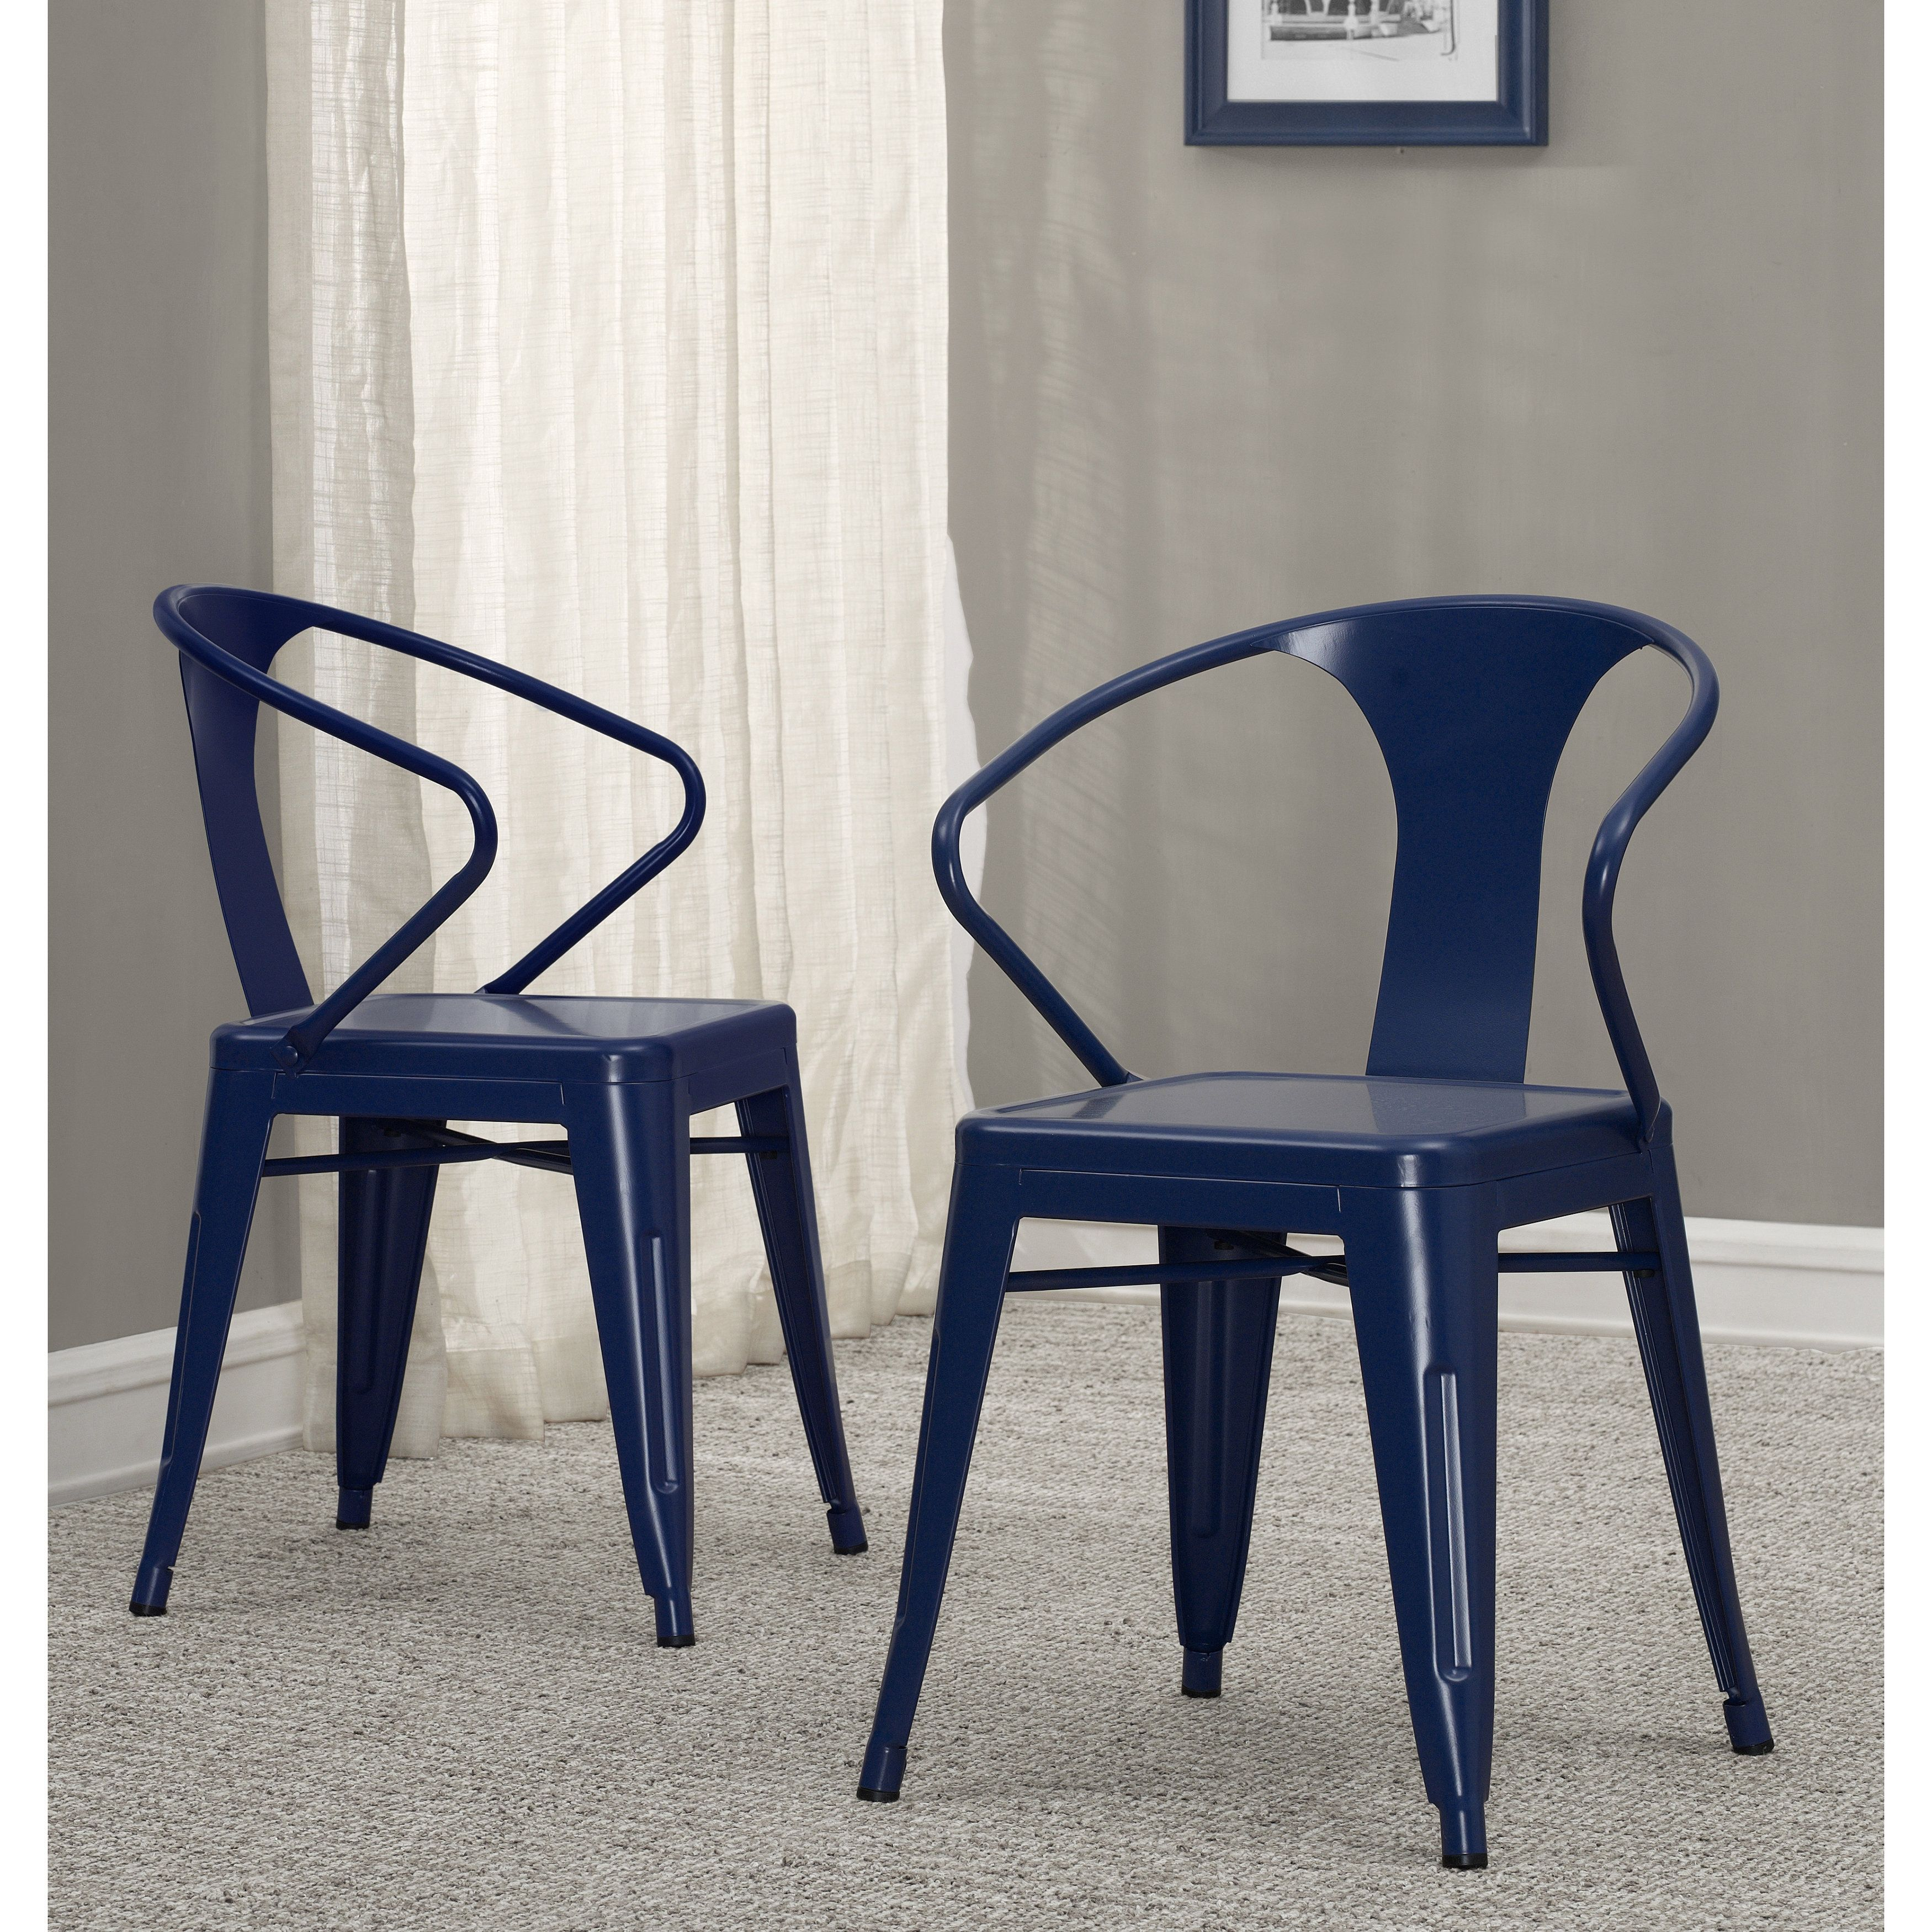 Tabouret Navy Metal Grey Stacking Chairs Set of 4 Navy